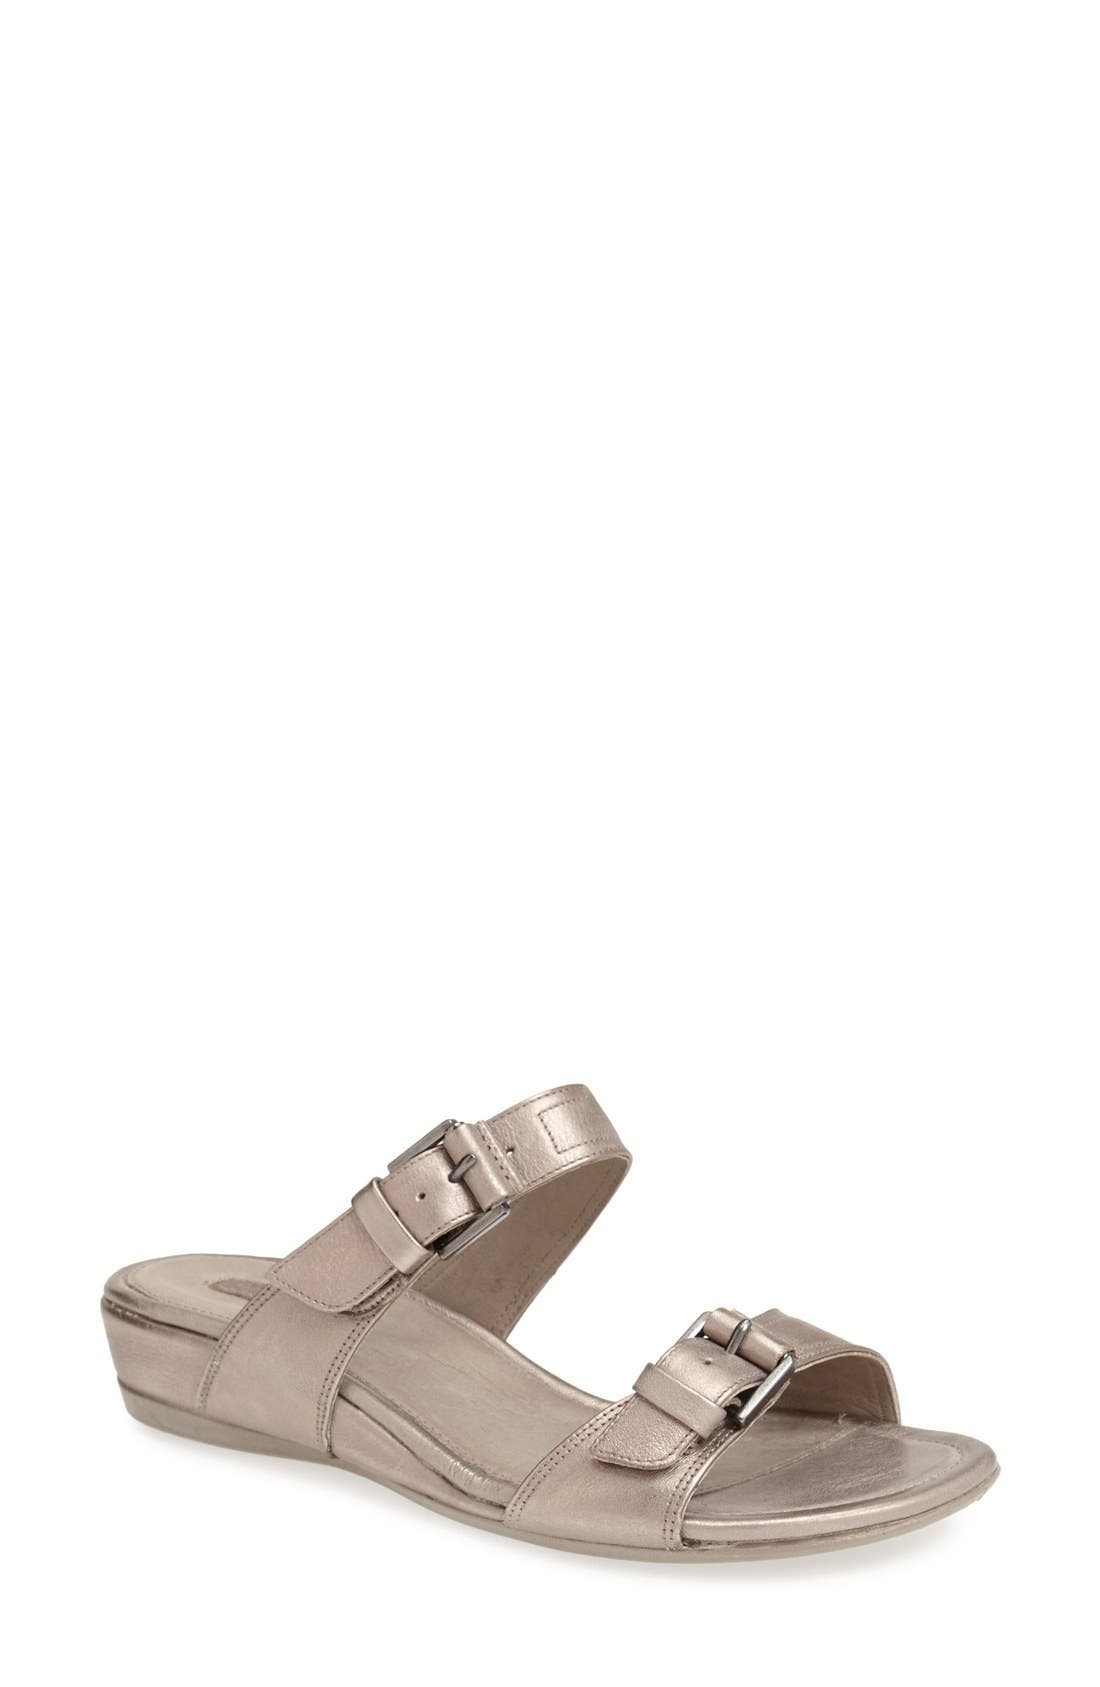 Main Image - ECCO 'Touch 25' Leather Slide Sandal